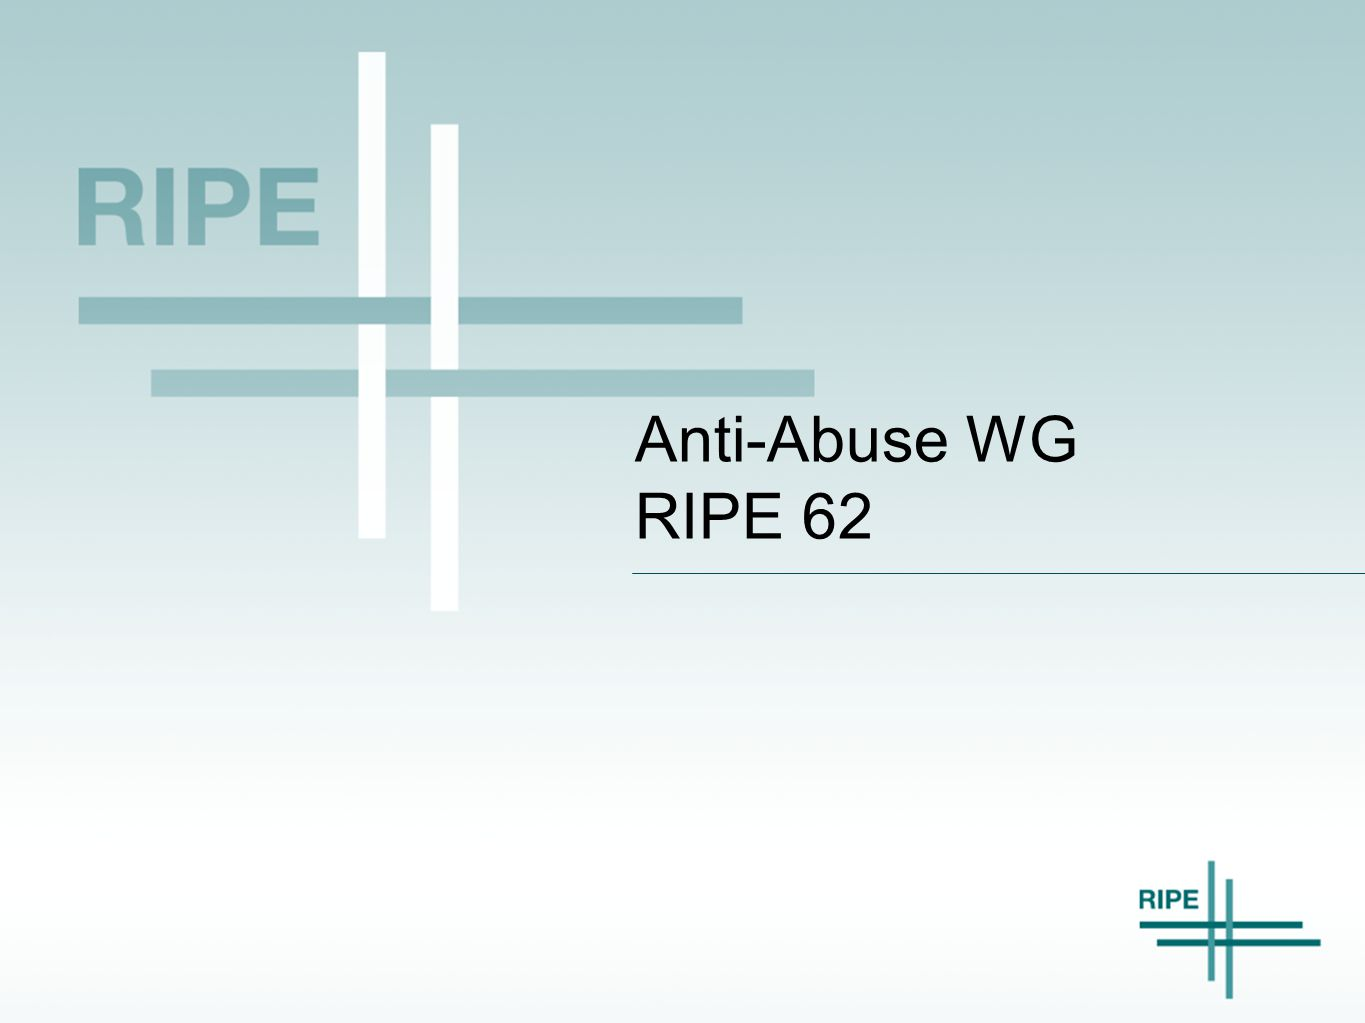 Anti-Abuse WG RIPE 62